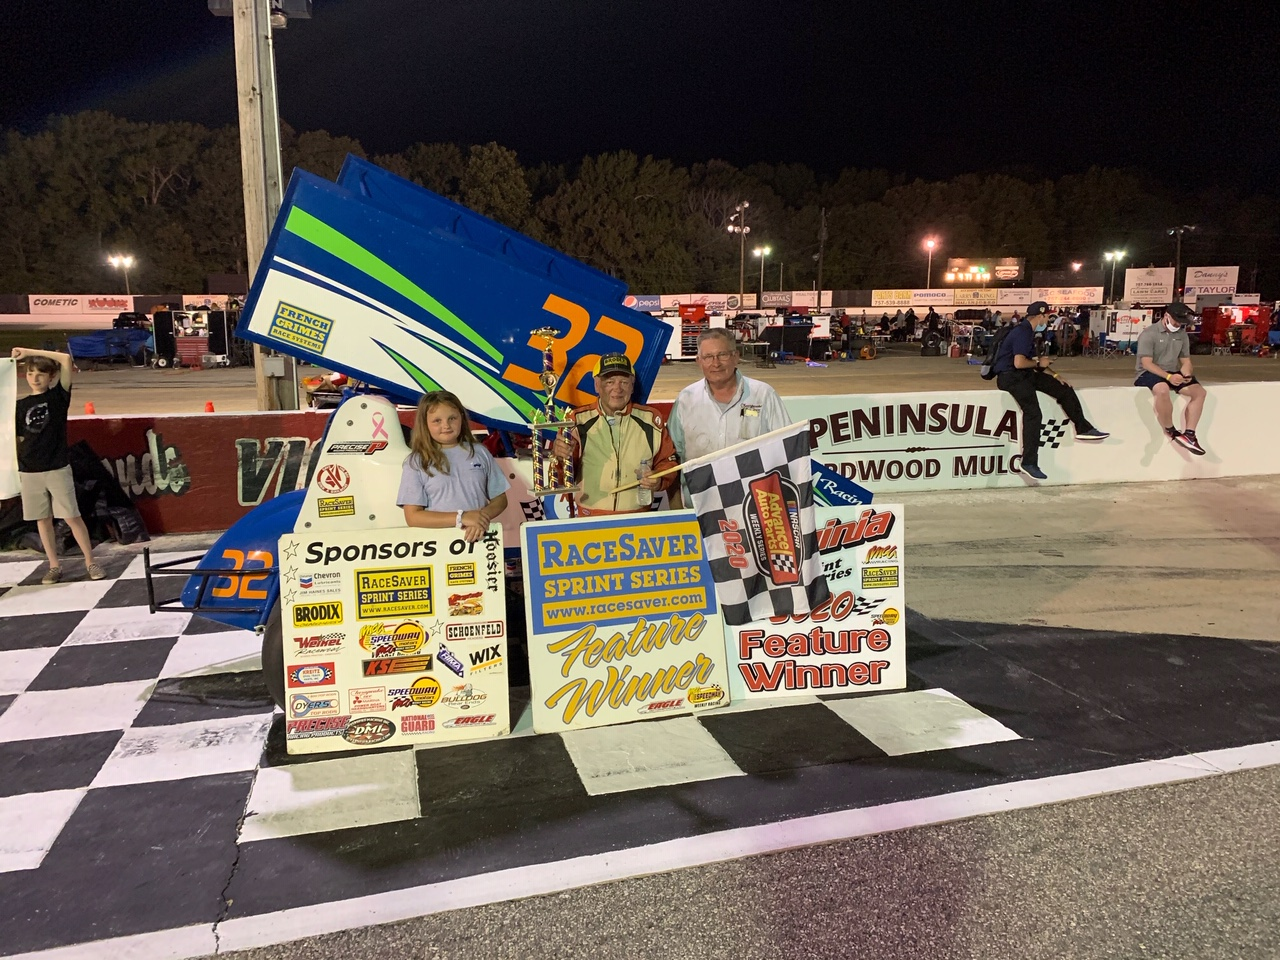 BILL RICE WINS JULY 4TH AT LANGLEY SPEEDWAY